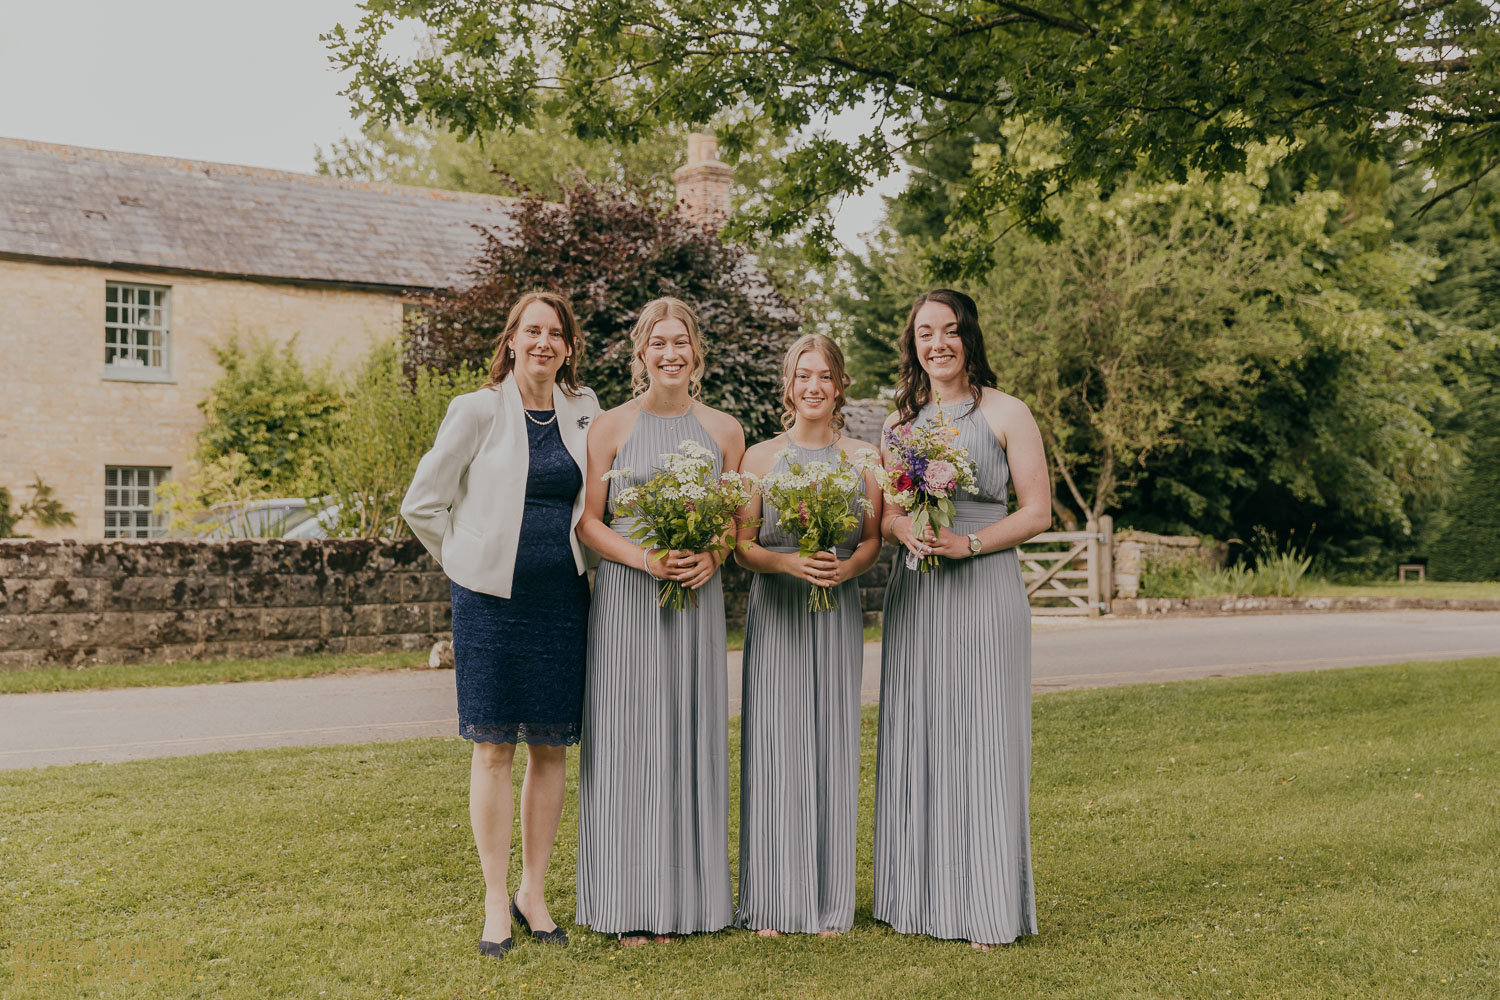 Relaxed group photo of bridesmaids outside Fairford Church wedding